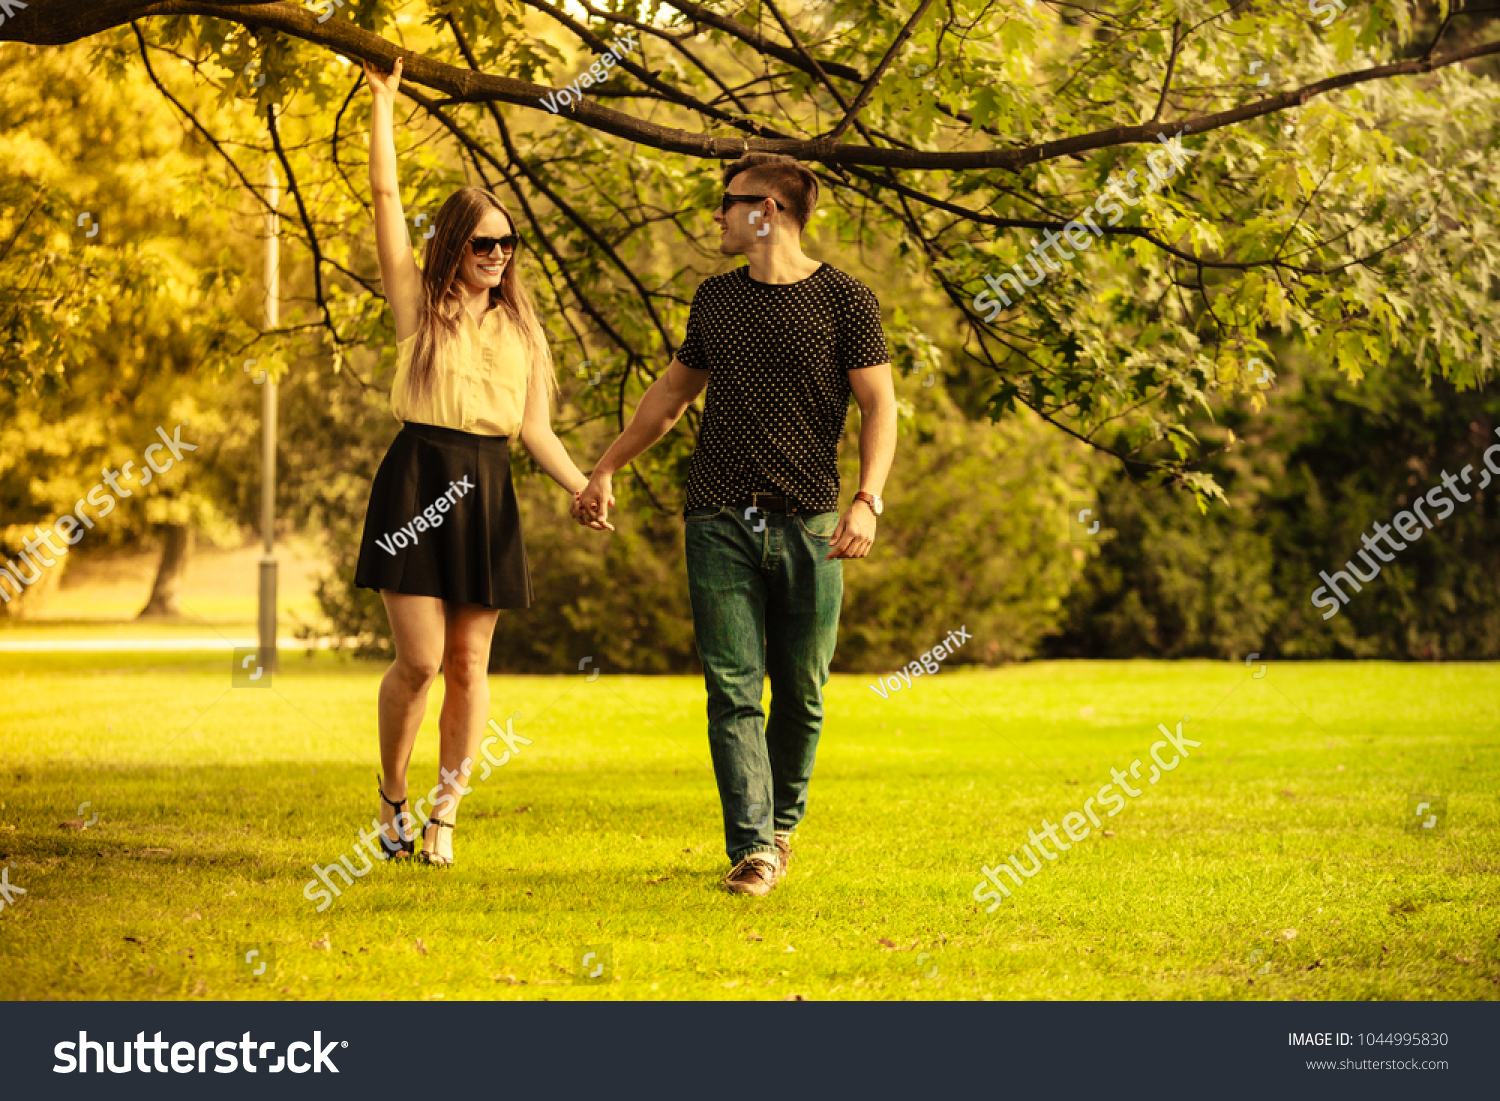 Park dating